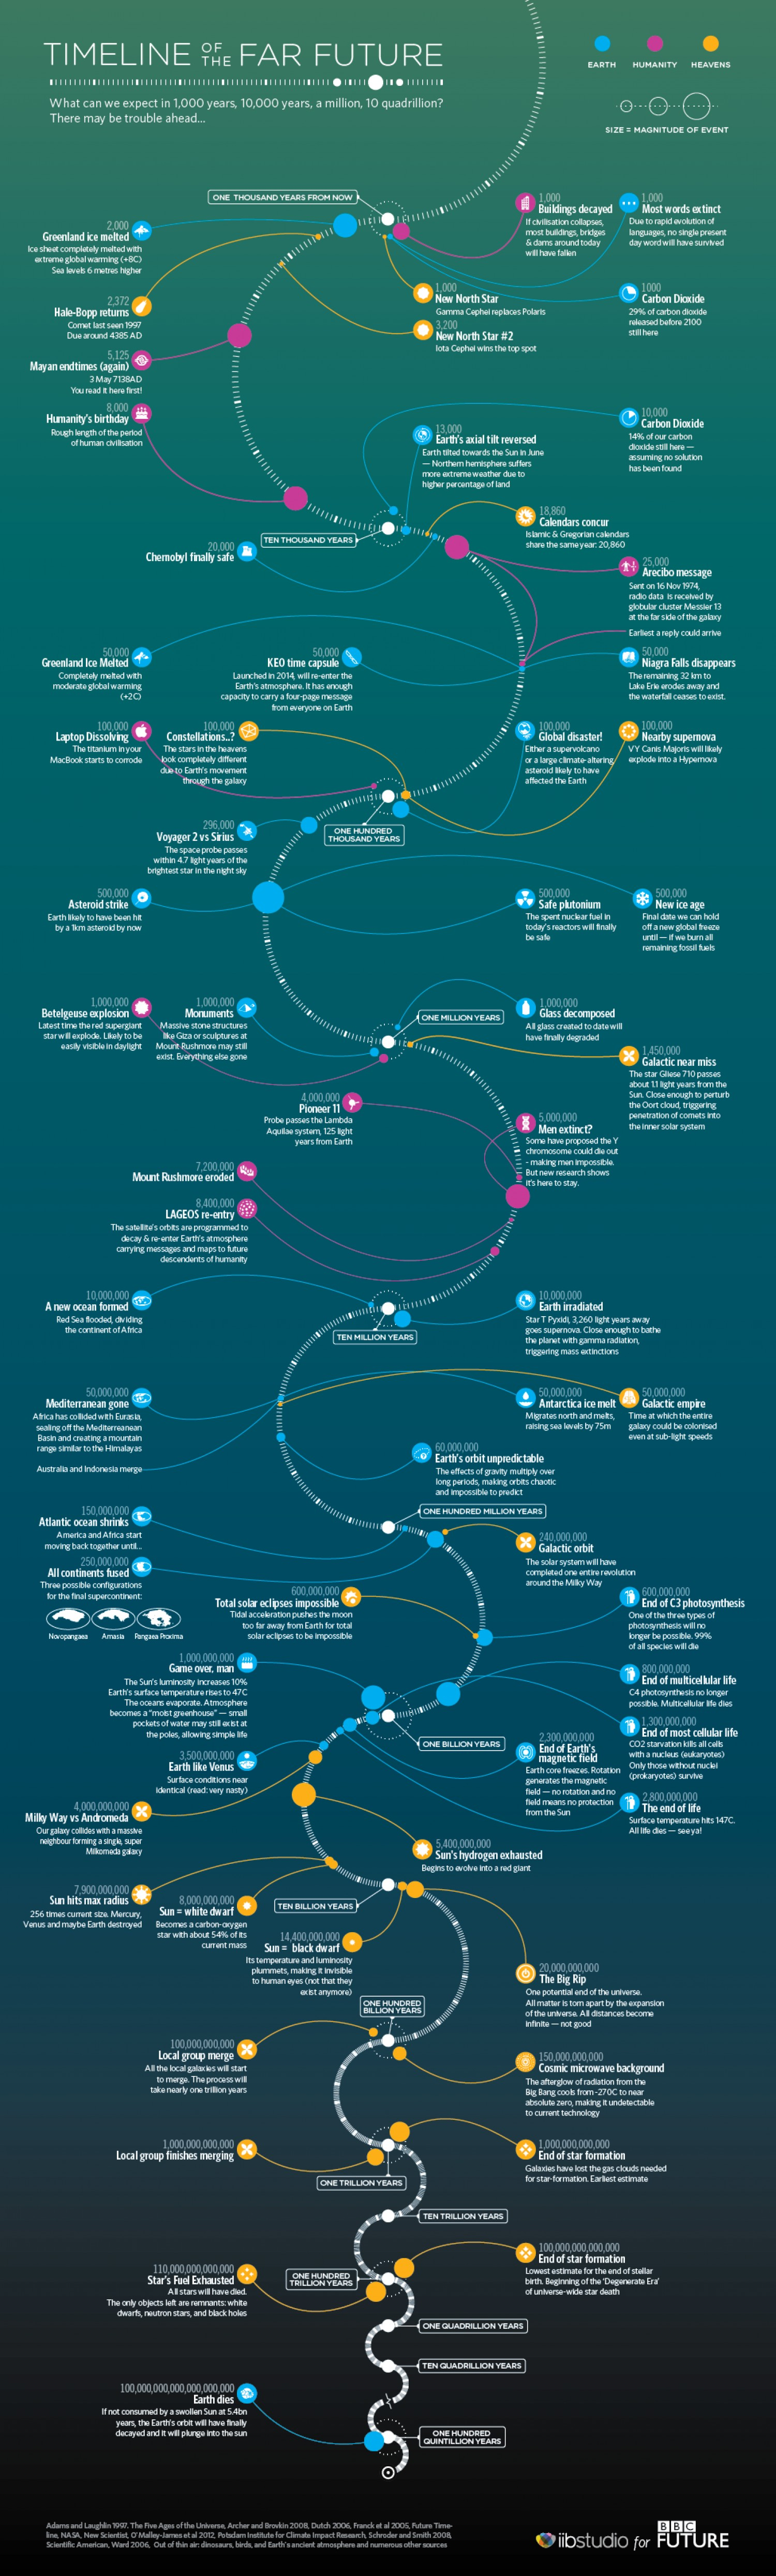 05 timeline-of-the-far-future_52d481e19c764_w1500